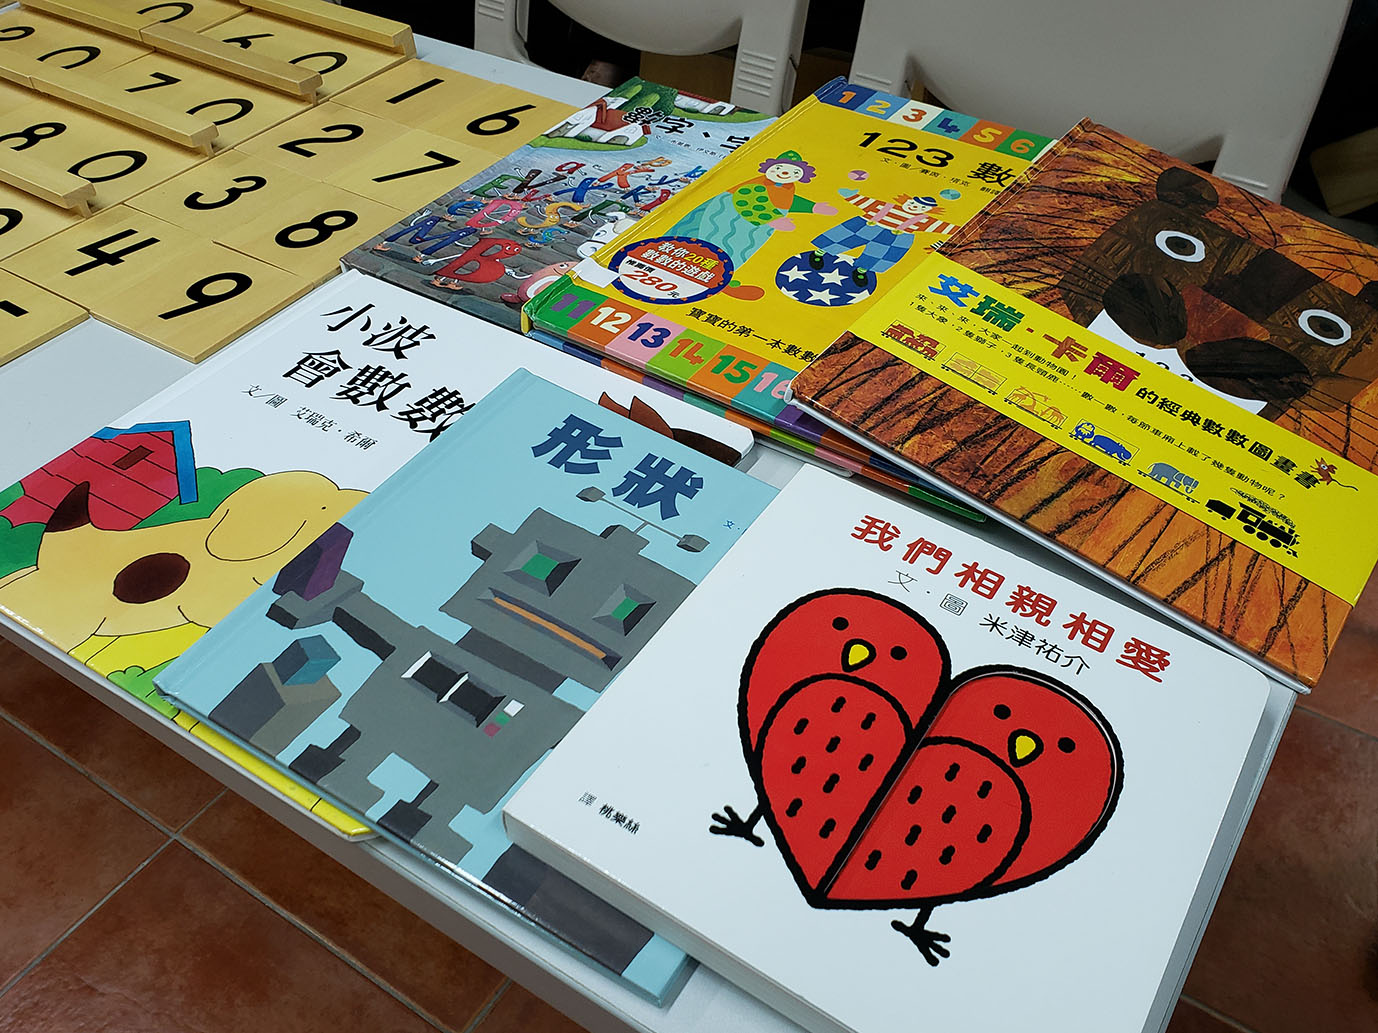 Teachers used different picture books and teaching materials for preschool students.